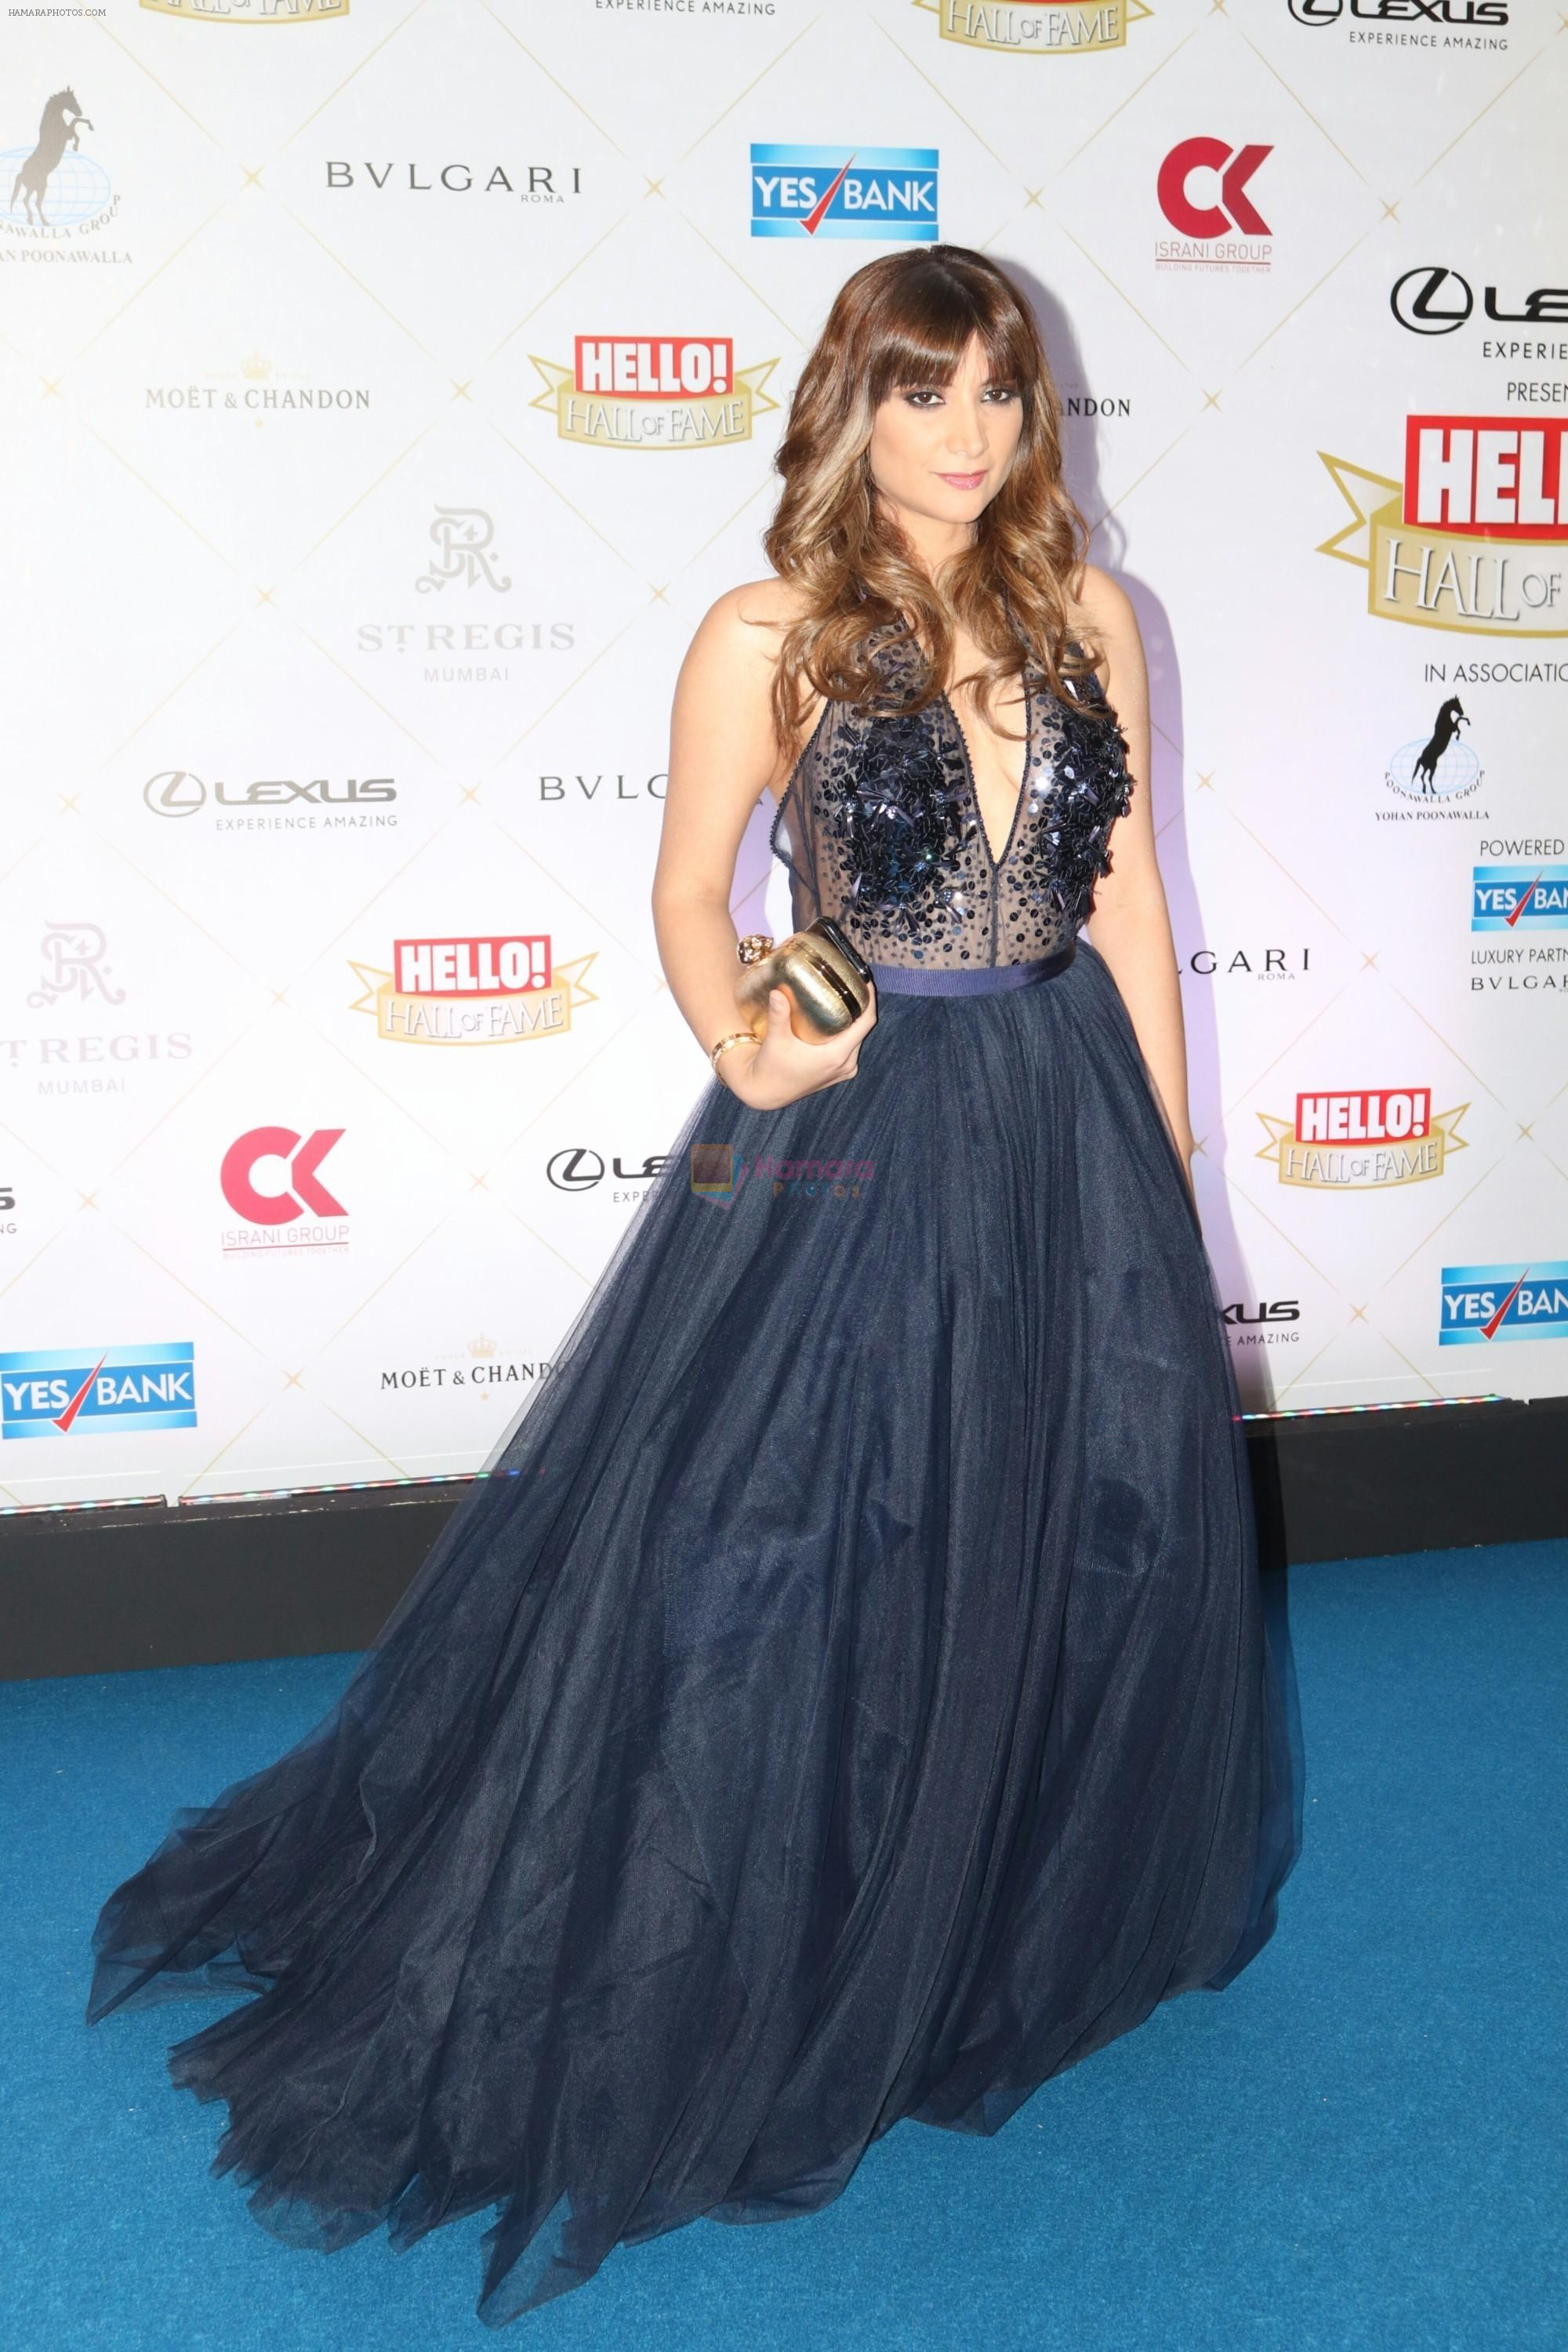 Michelle Poonawalla at Hello Hall of Fame Awards in st regis in mumbai on 12th March 2018